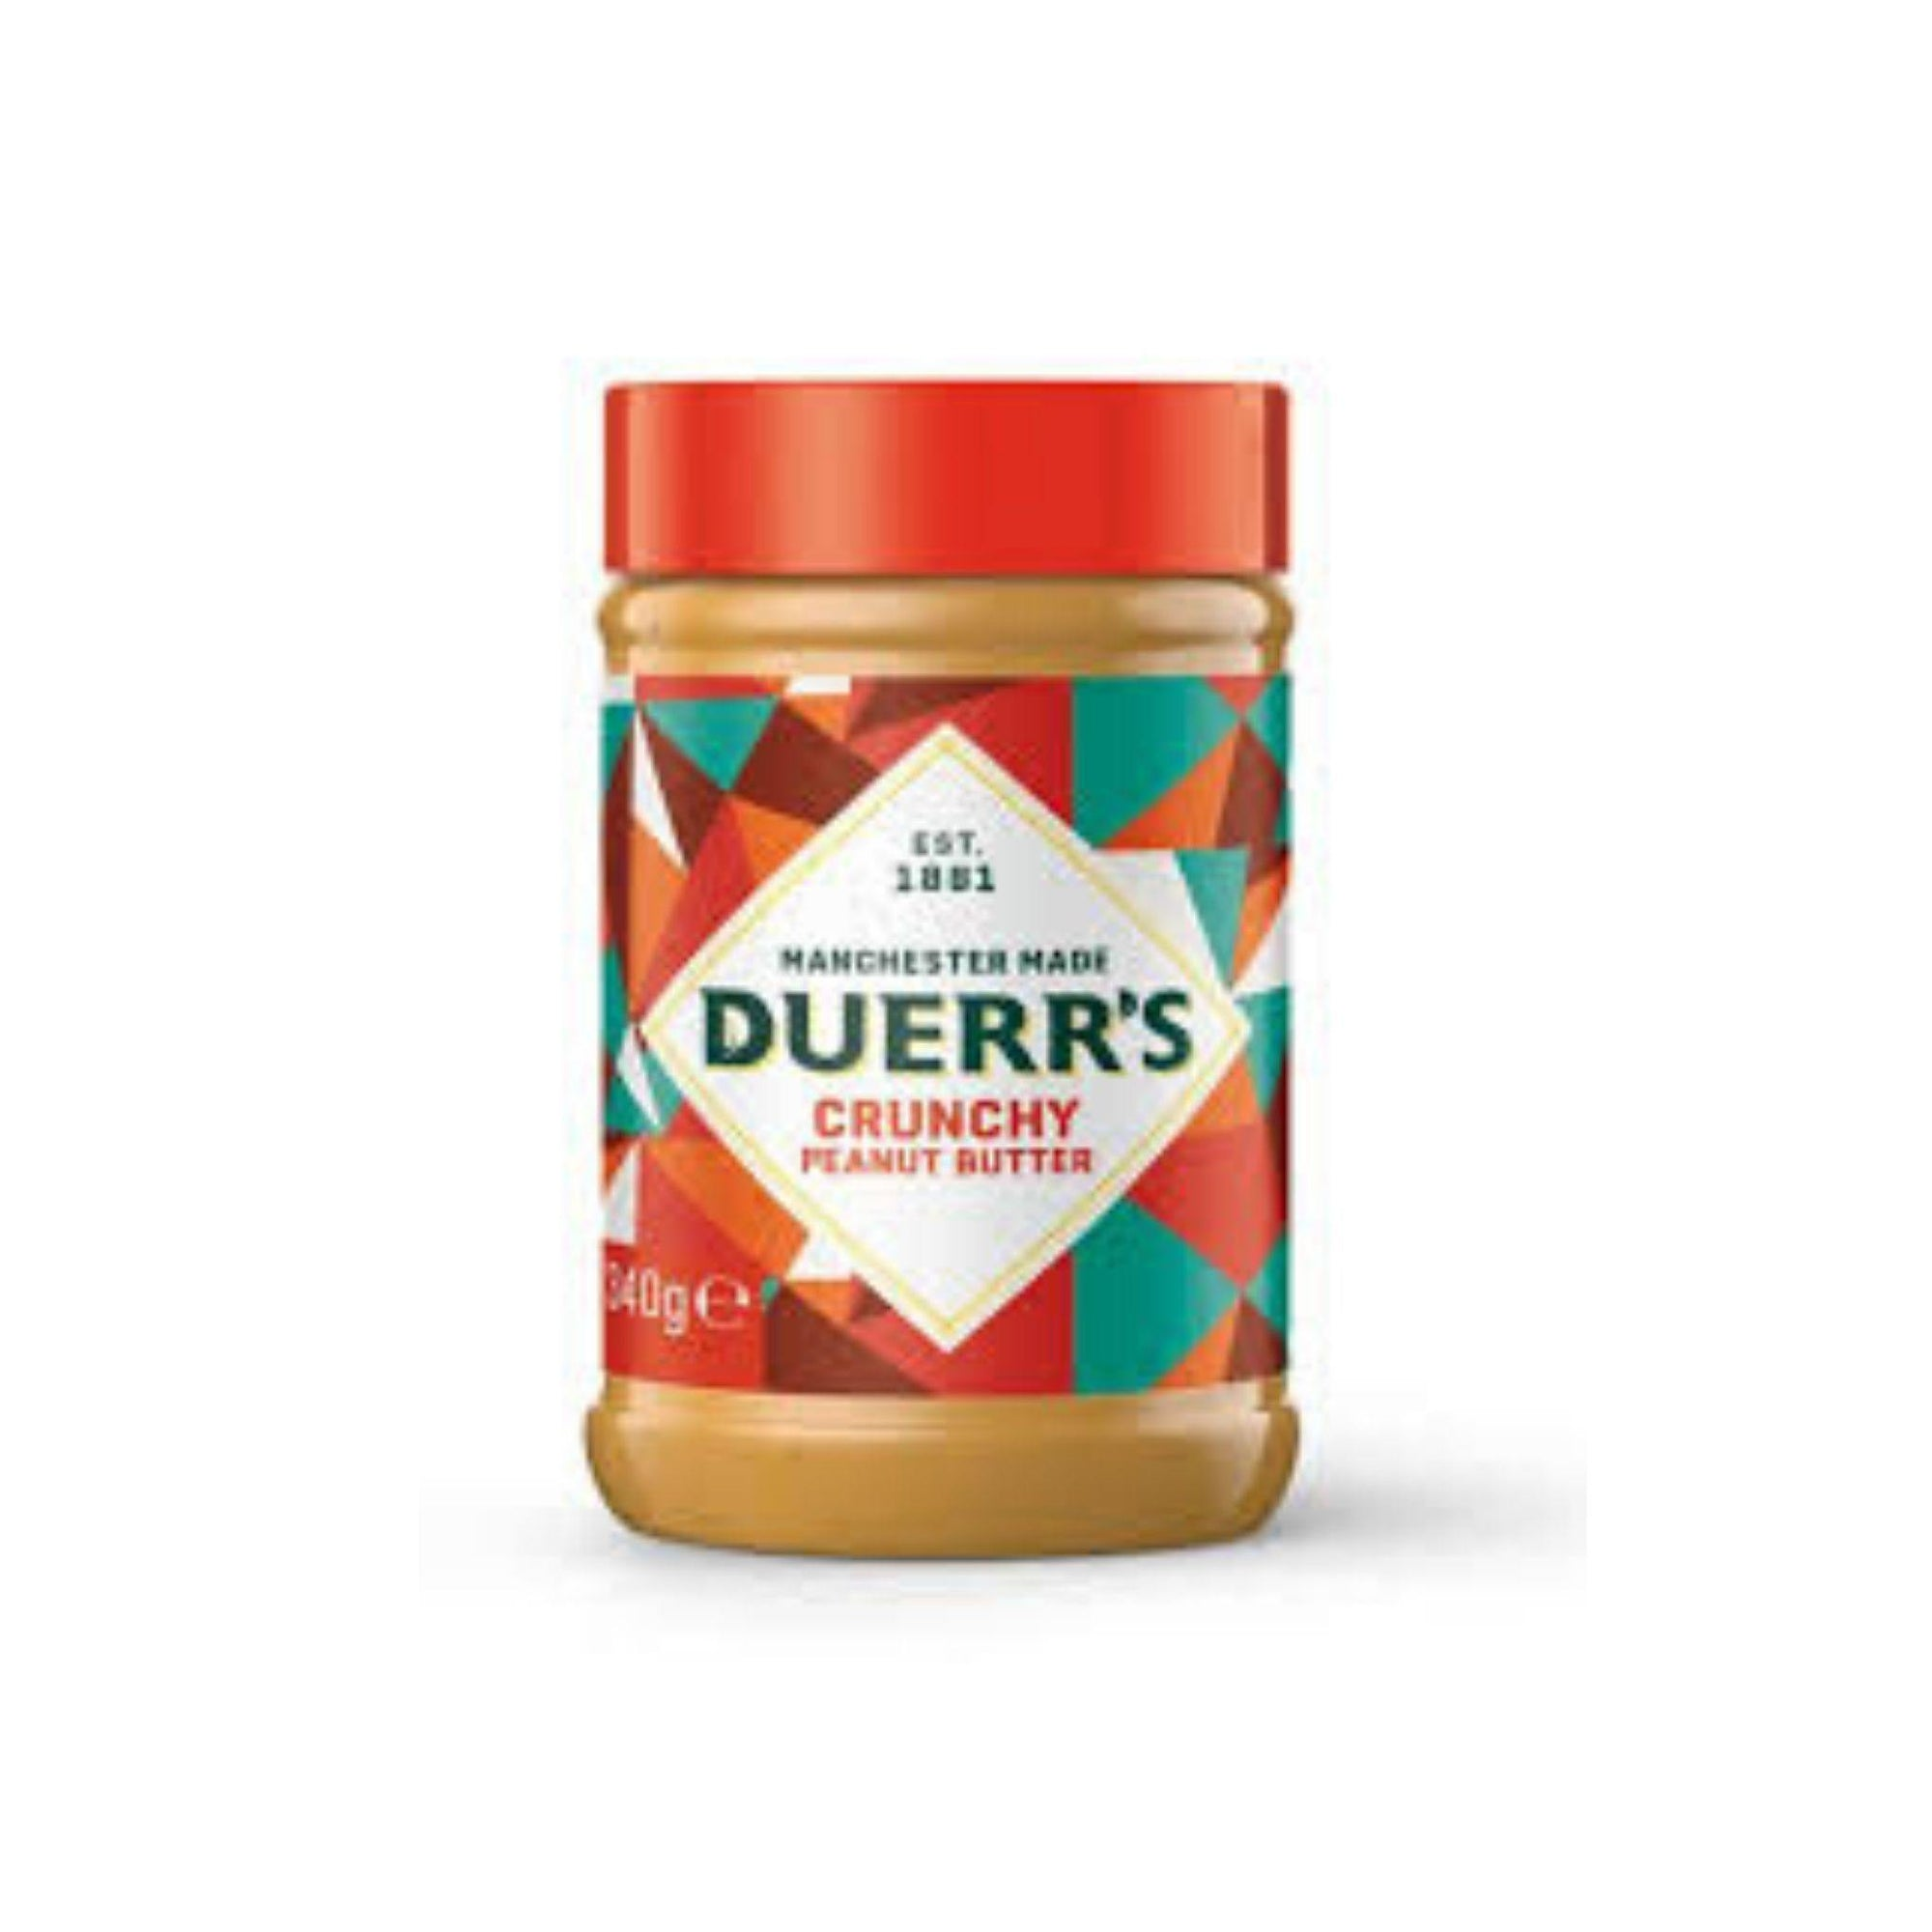 Duerrs Crunchy Peanut Butter 340G - Asian Harvest